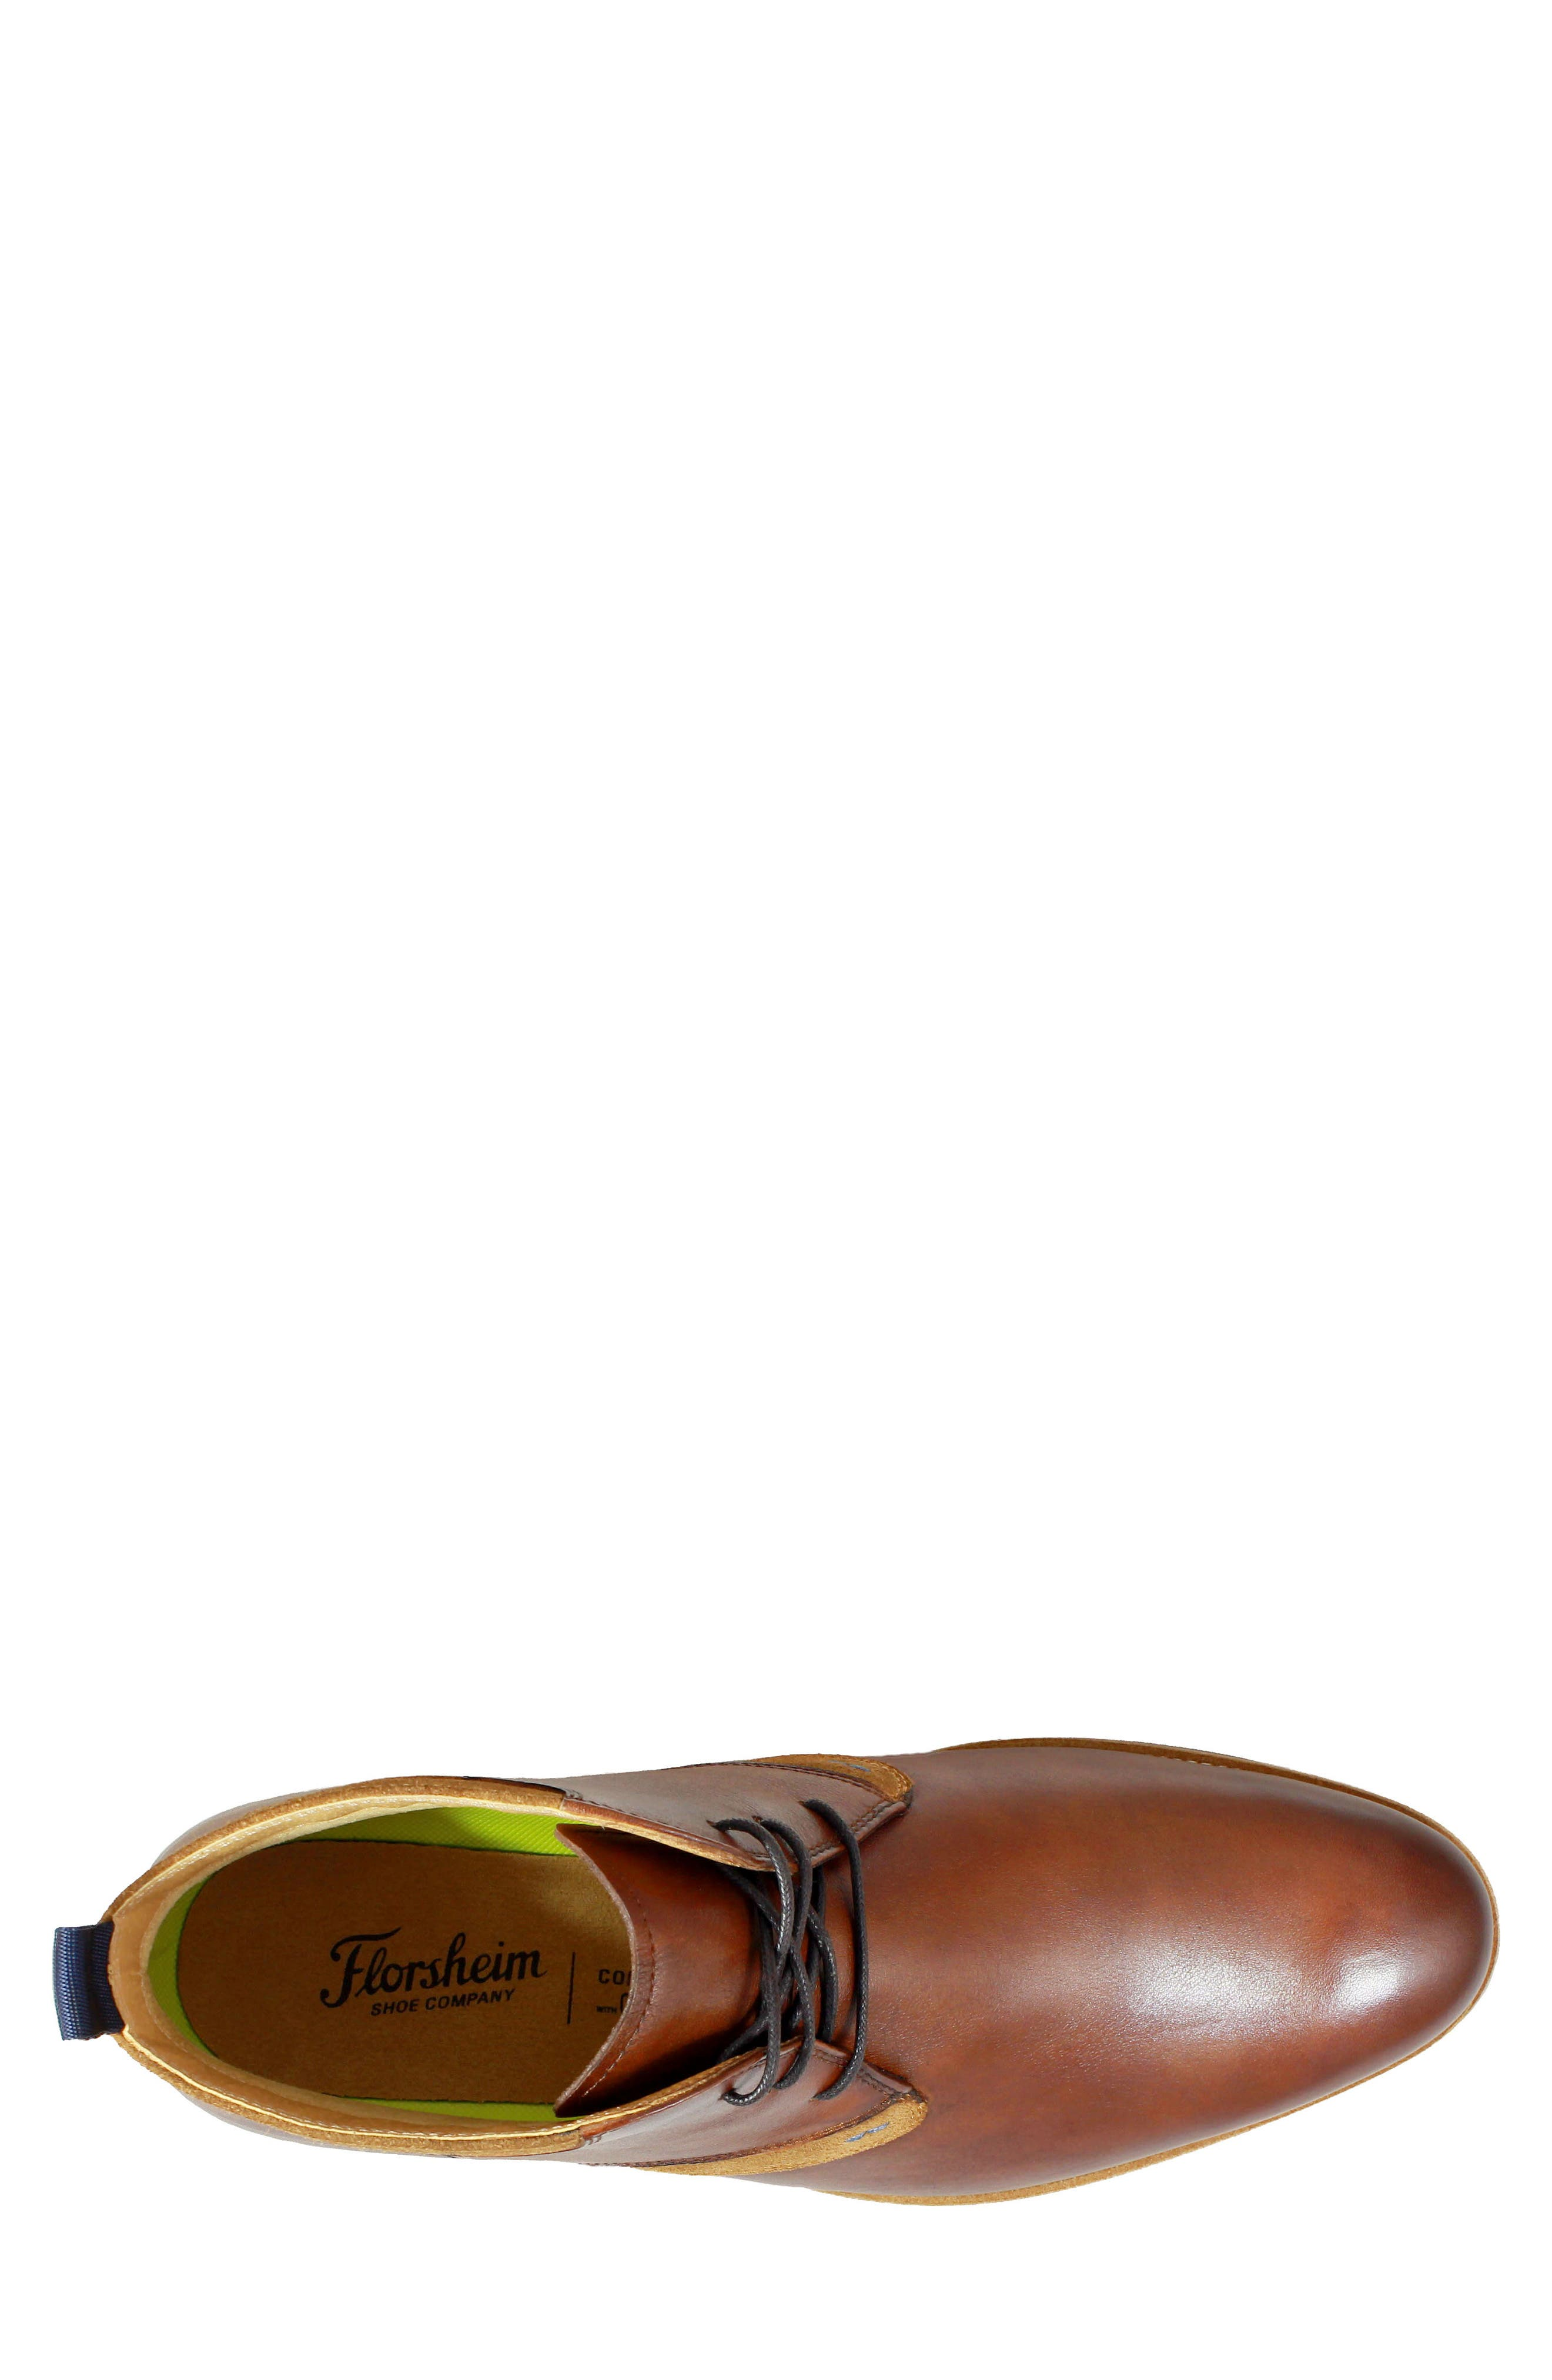 Uptown Chukka Boot,                             Alternate thumbnail 5, color,                             COGNAC LEATHER